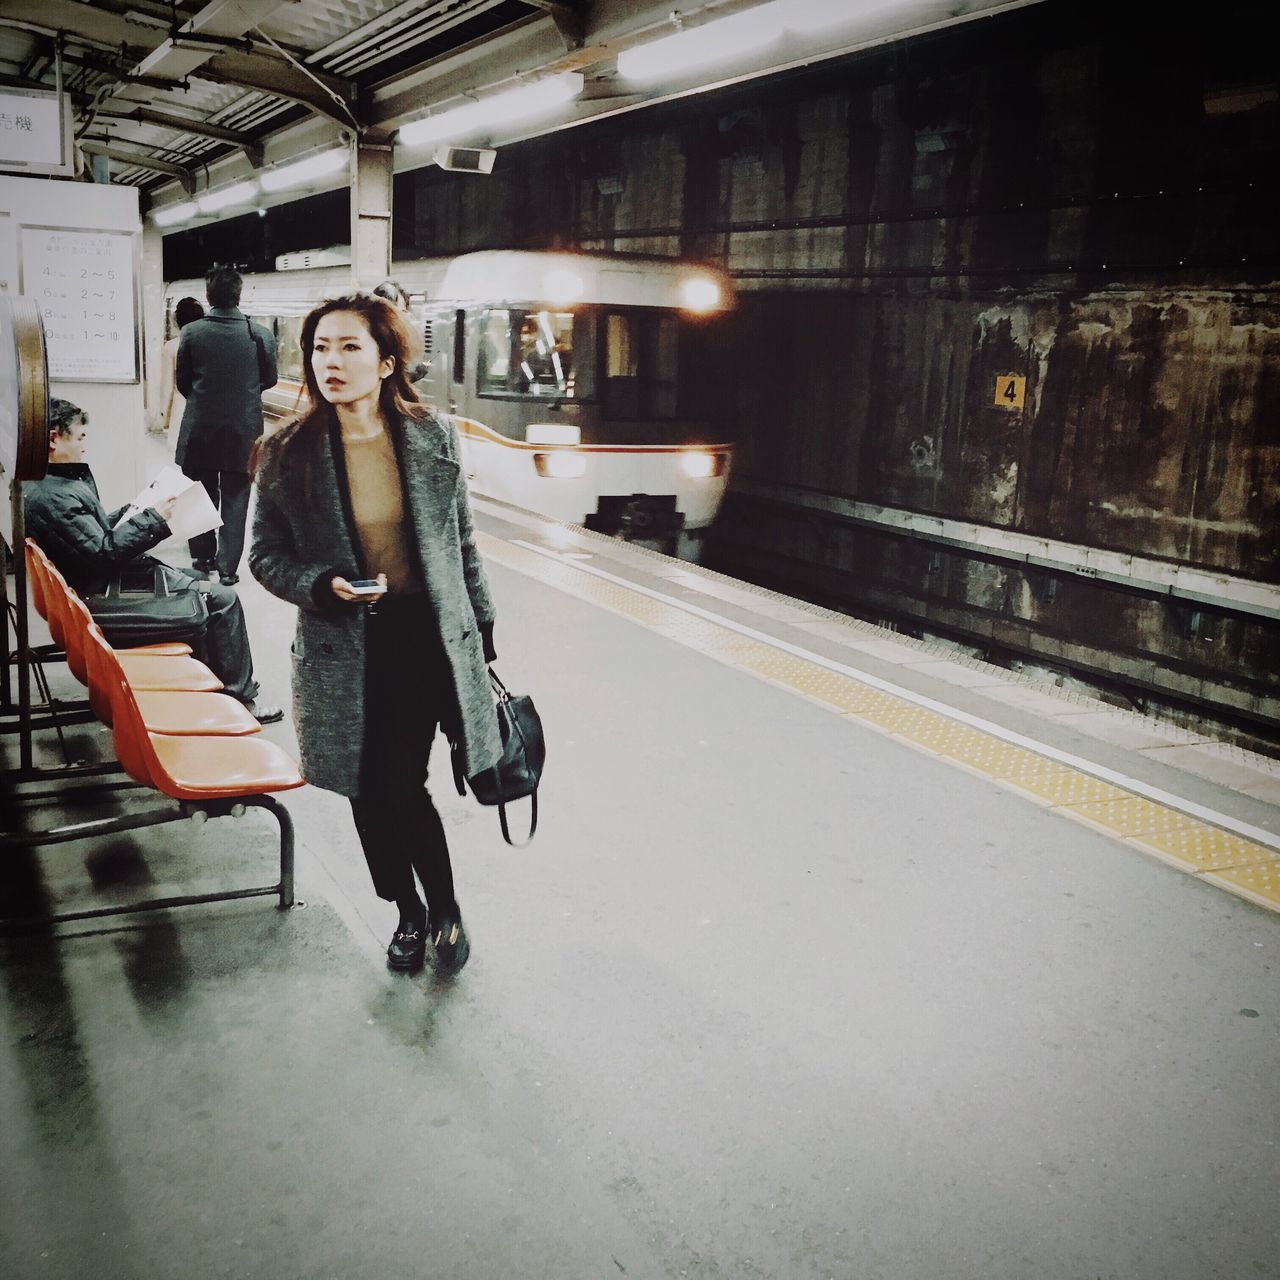 transportation, full length, railroad station platform, standing, casual clothing, railroad station, real people, rail transportation, public transportation, lifestyles, young adult, young women, day, indoors, one person, people